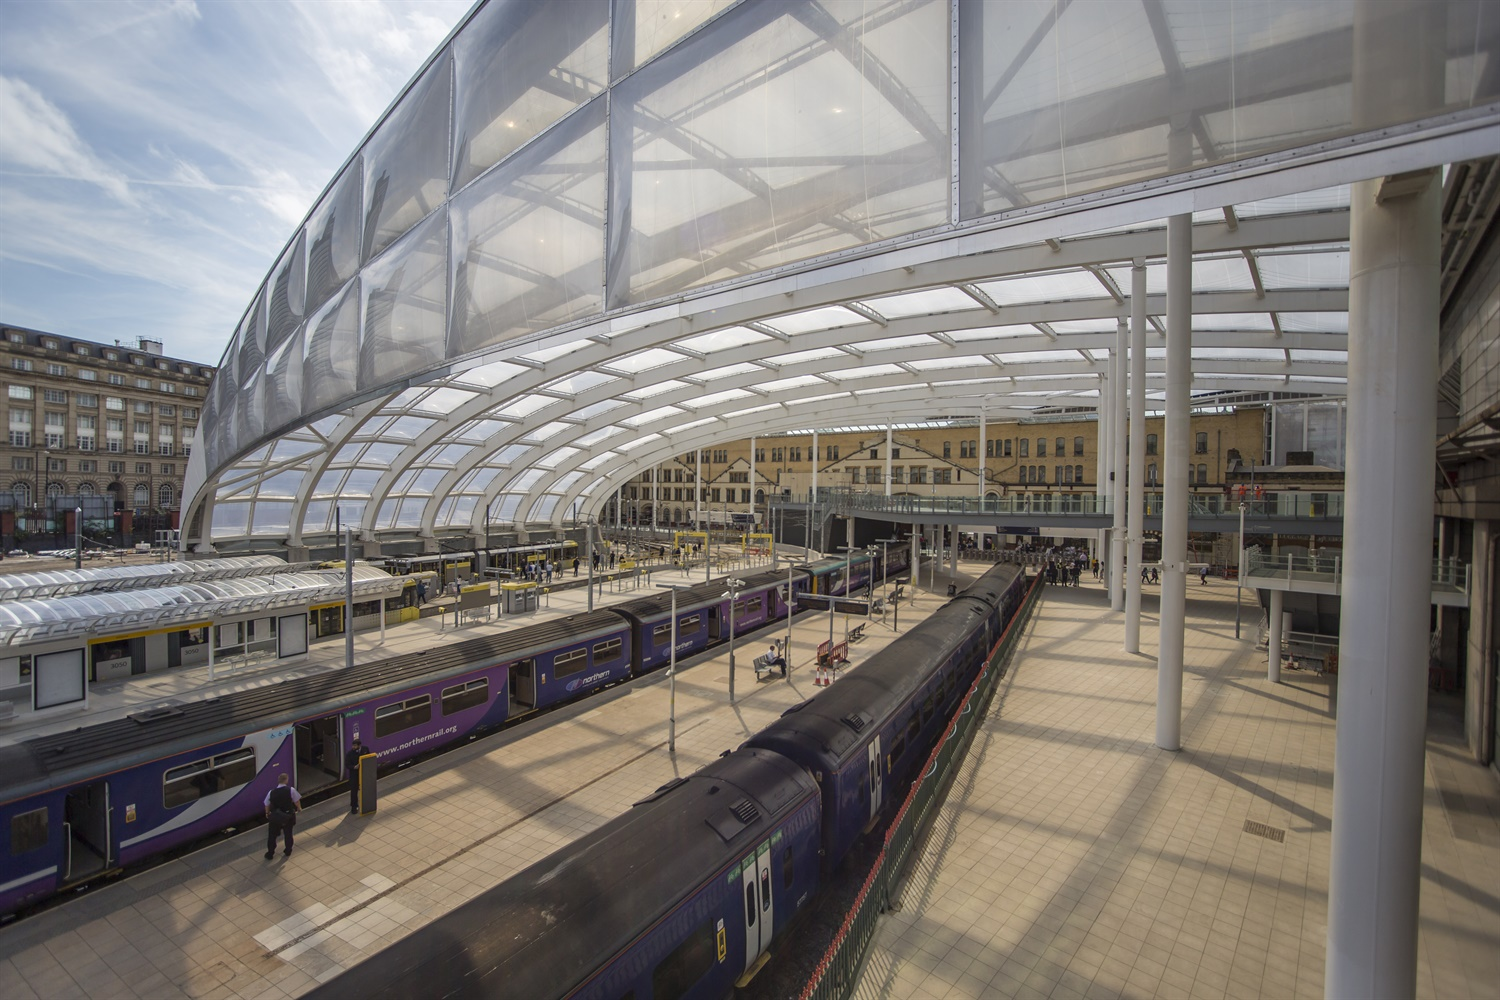 McLoughlin officially opens refurbished Manchester Victoria